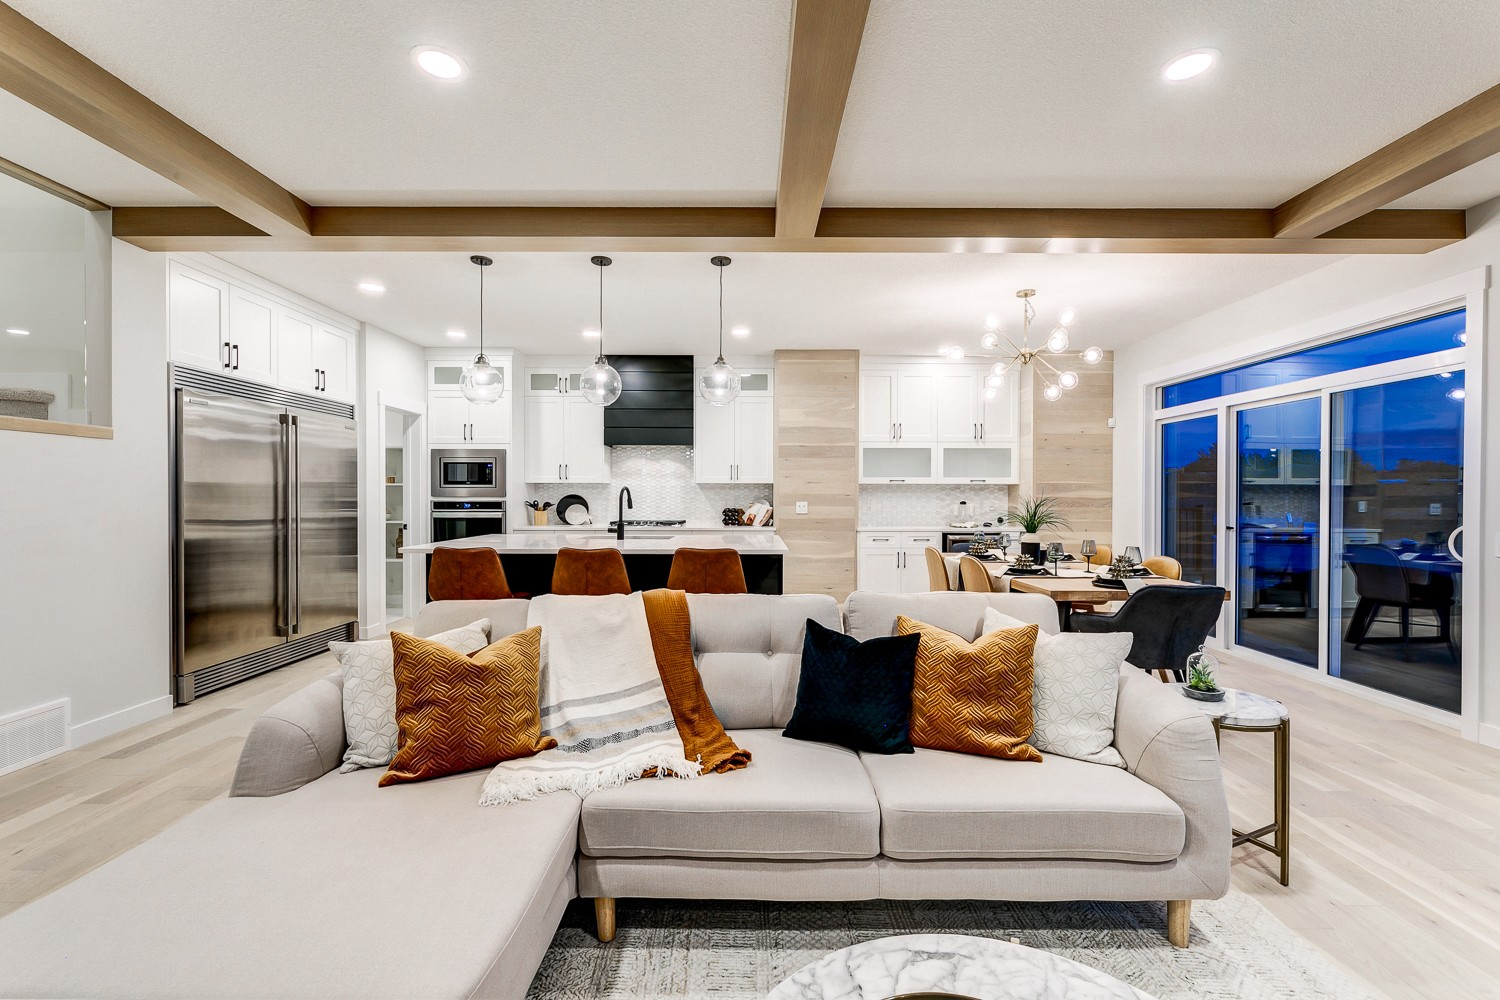 Showhome photos of City Homes Master Builders Showhome in Kinglet by Big Lake